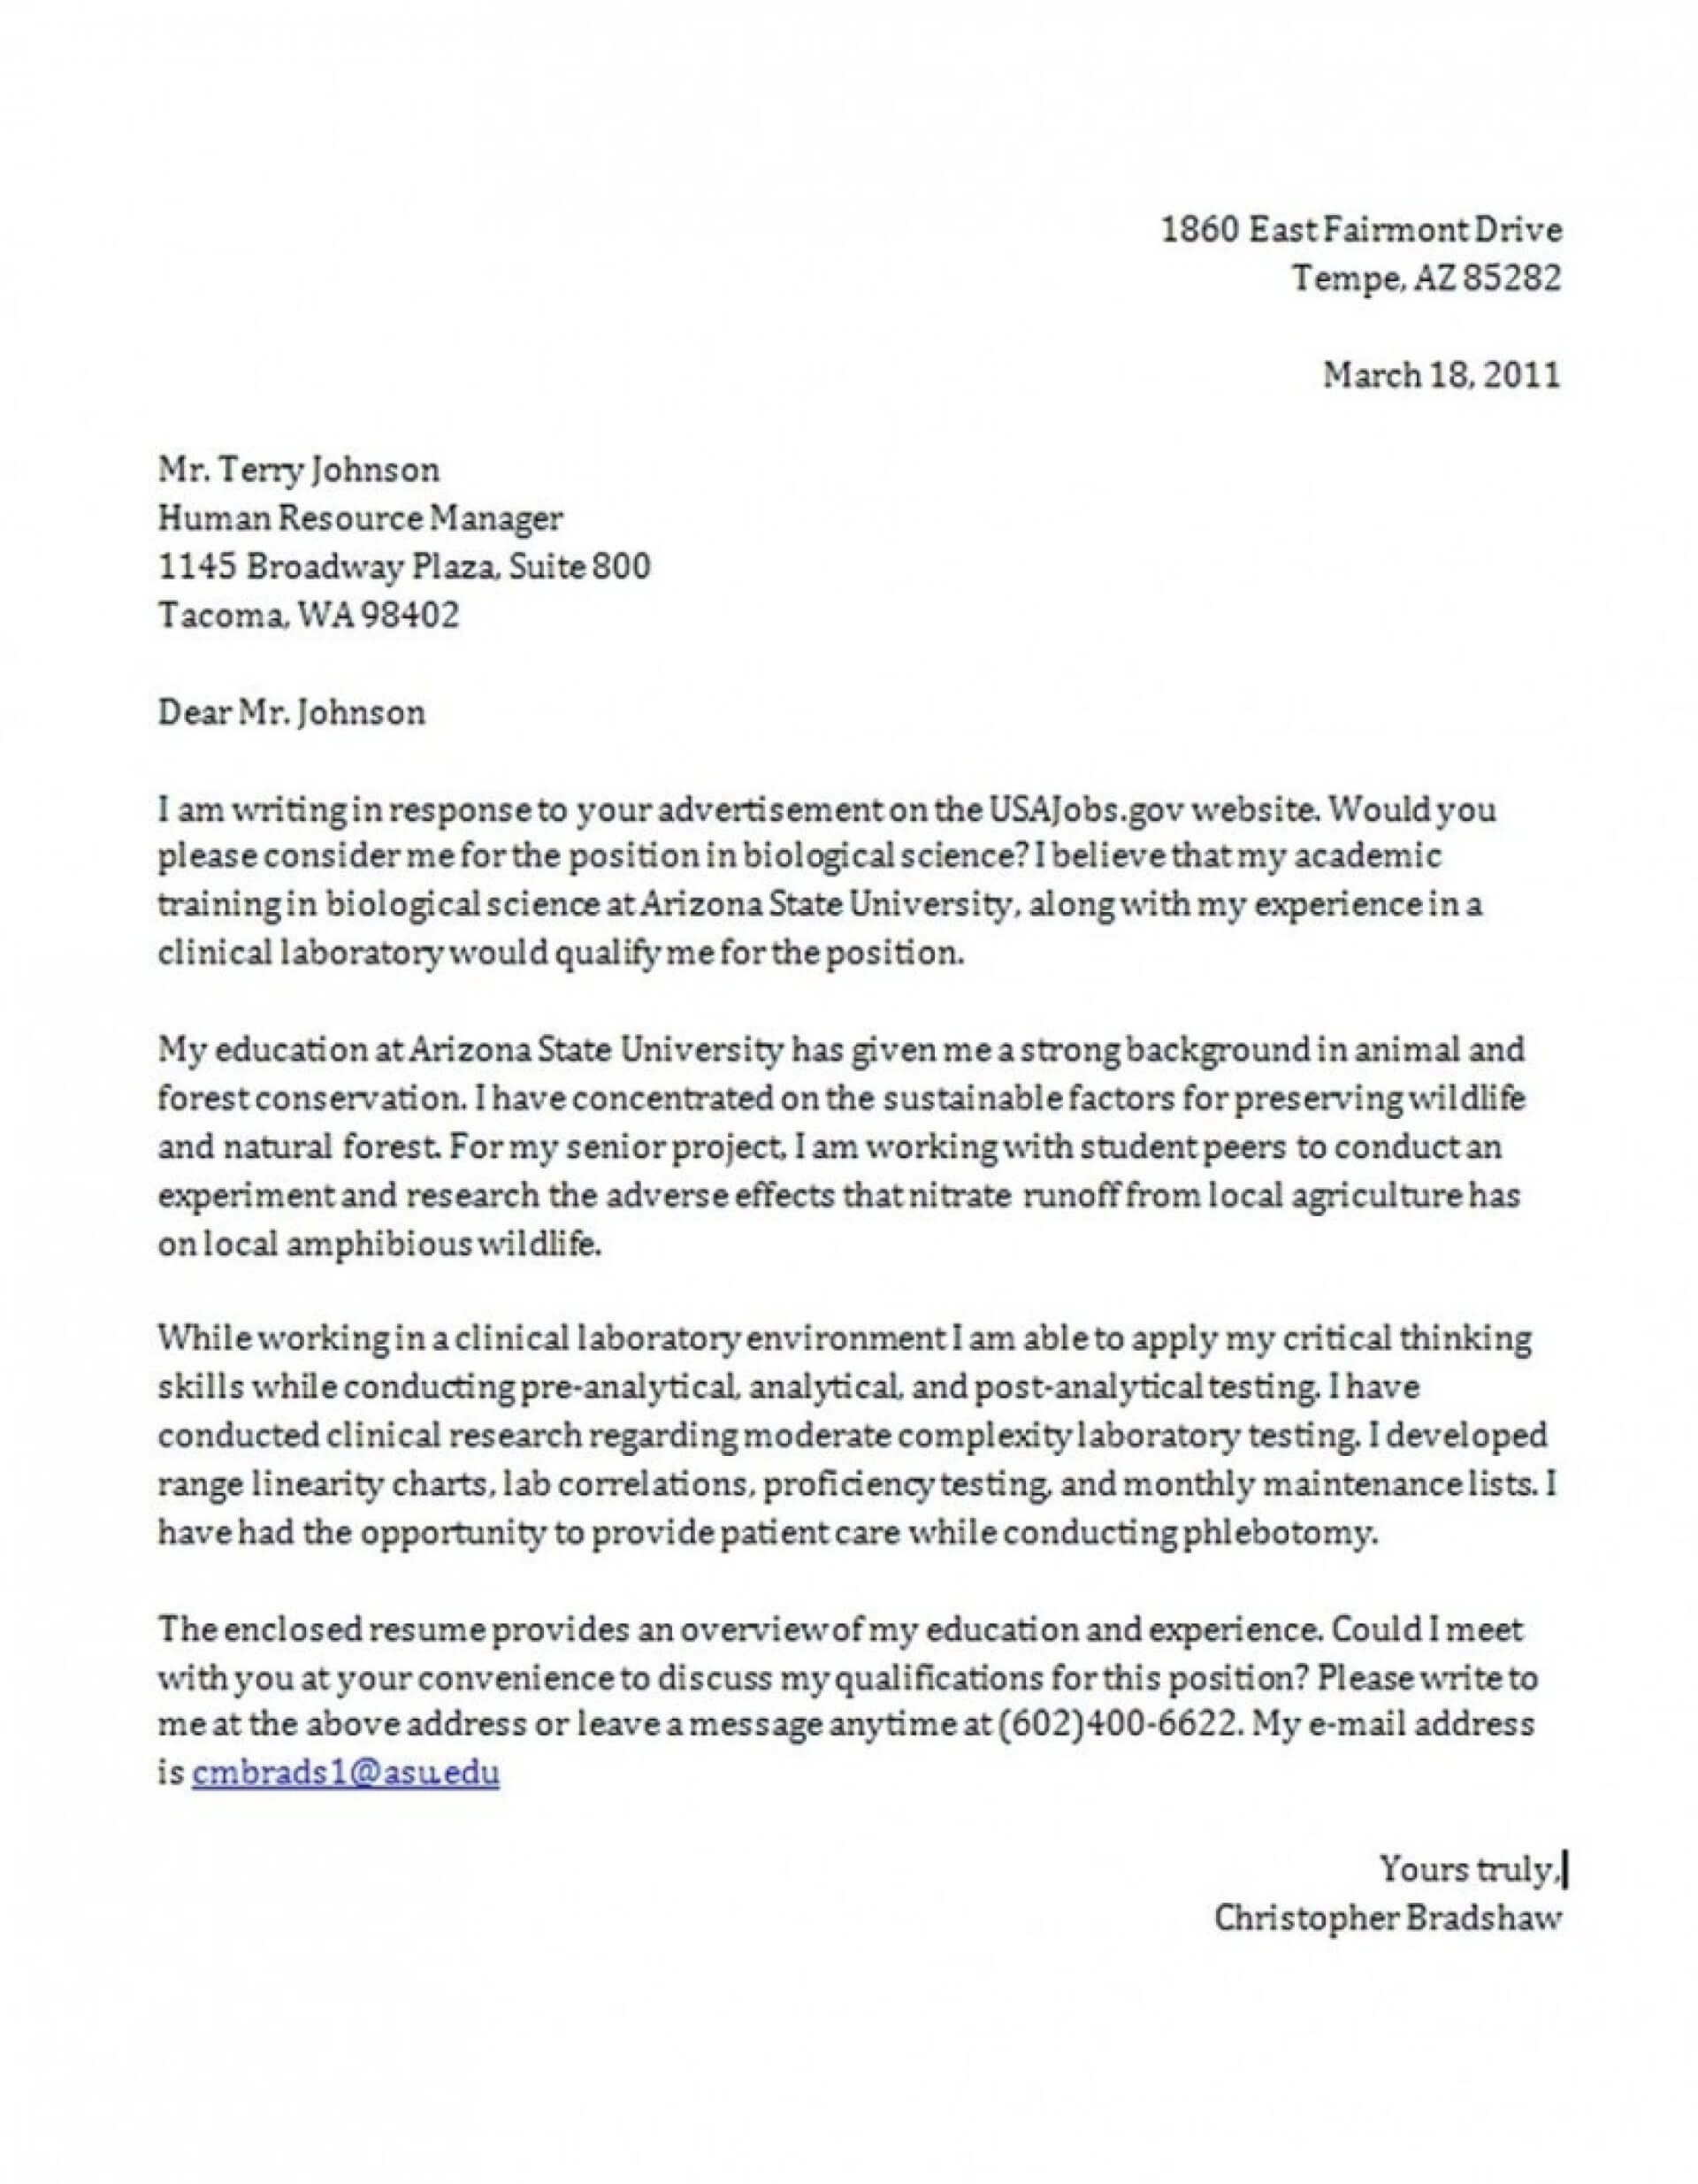 011 Letter Of Interest Template Microsoft Word Sweep11 Ideas regarding Letter Of Interest Template Microsoft Word